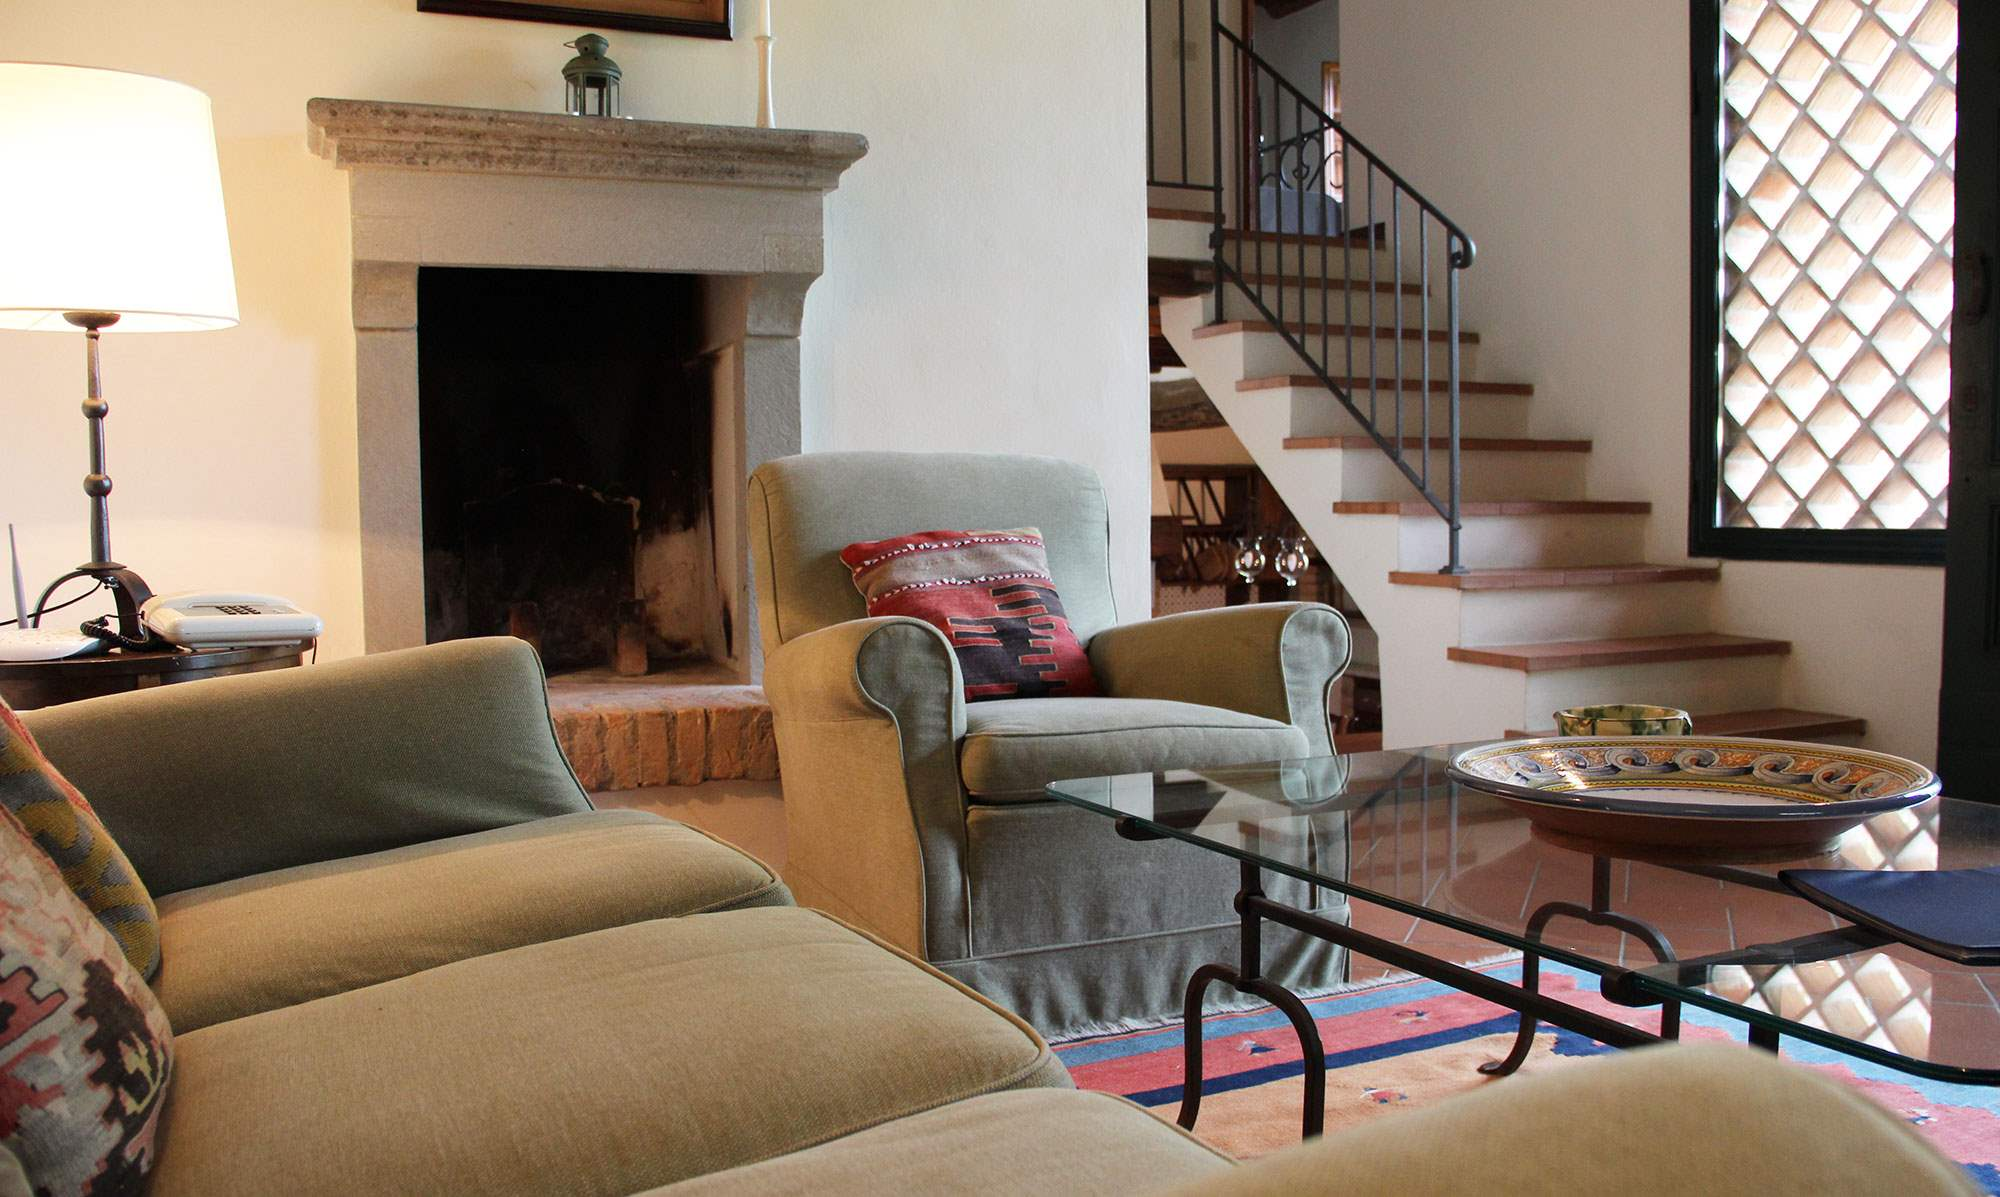 Casas Ferruzzi, 8 bedroom apartment in Chianti & Countryside, Tuscany Photo #6